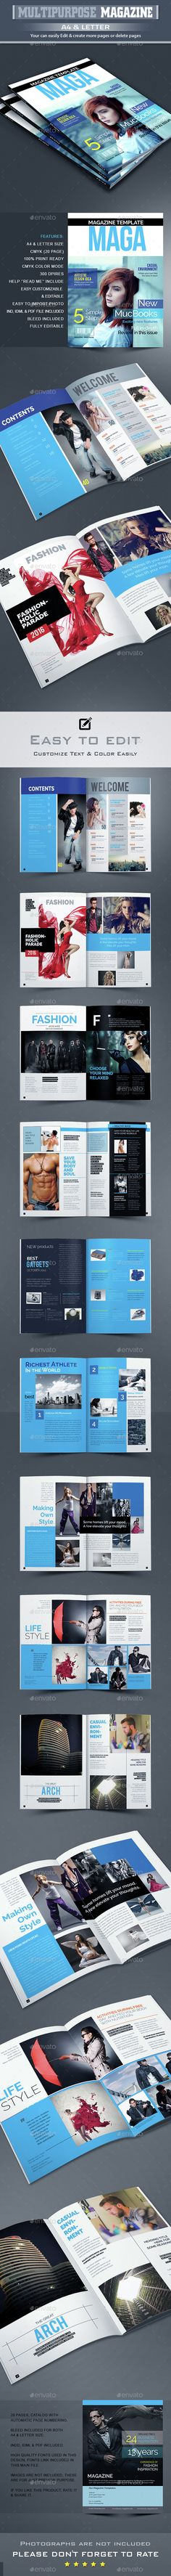 Magazine Template InDesign INDD. Download here: http://graphicriver.net/item/magazine-template-/14823886?ref=ksioks